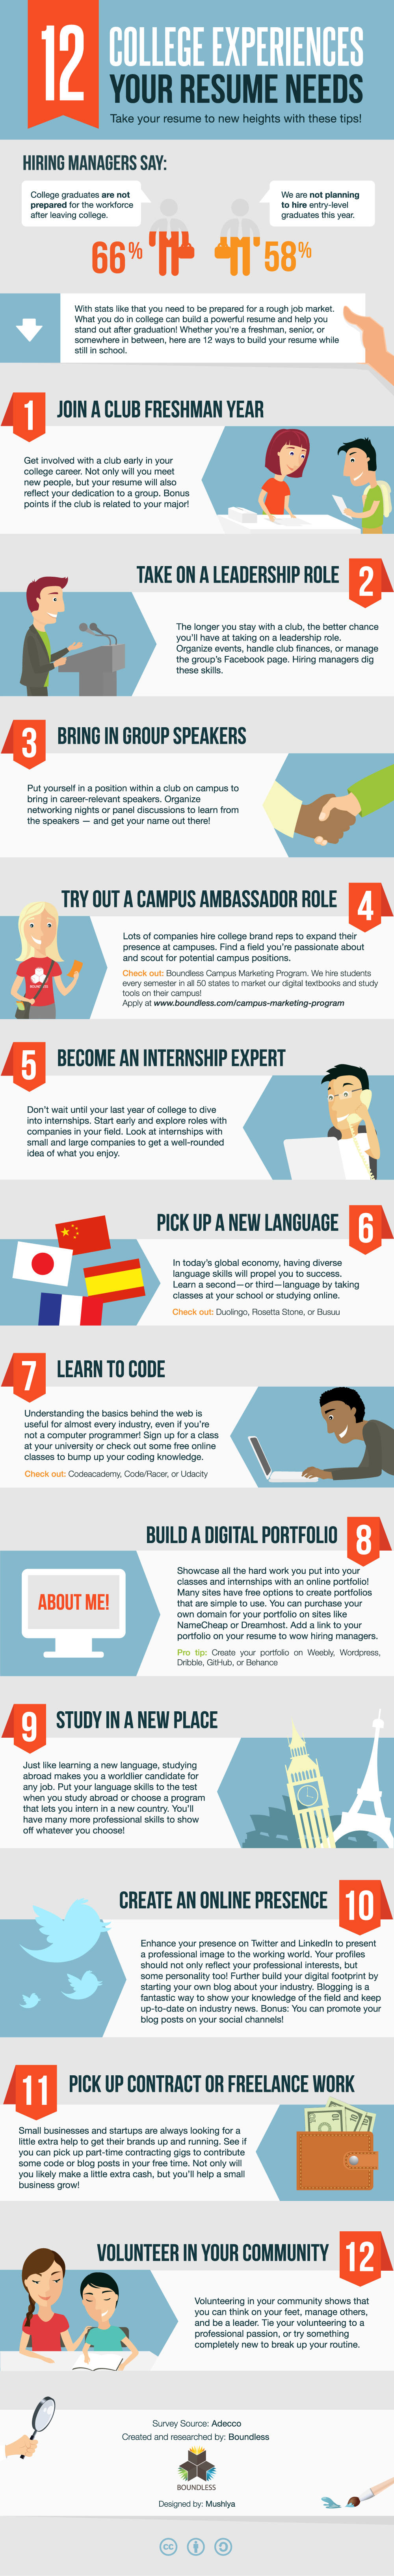 12 Things You Need to do in College in Order to Have One Stellar Résumé [INFOGRAPHIC]